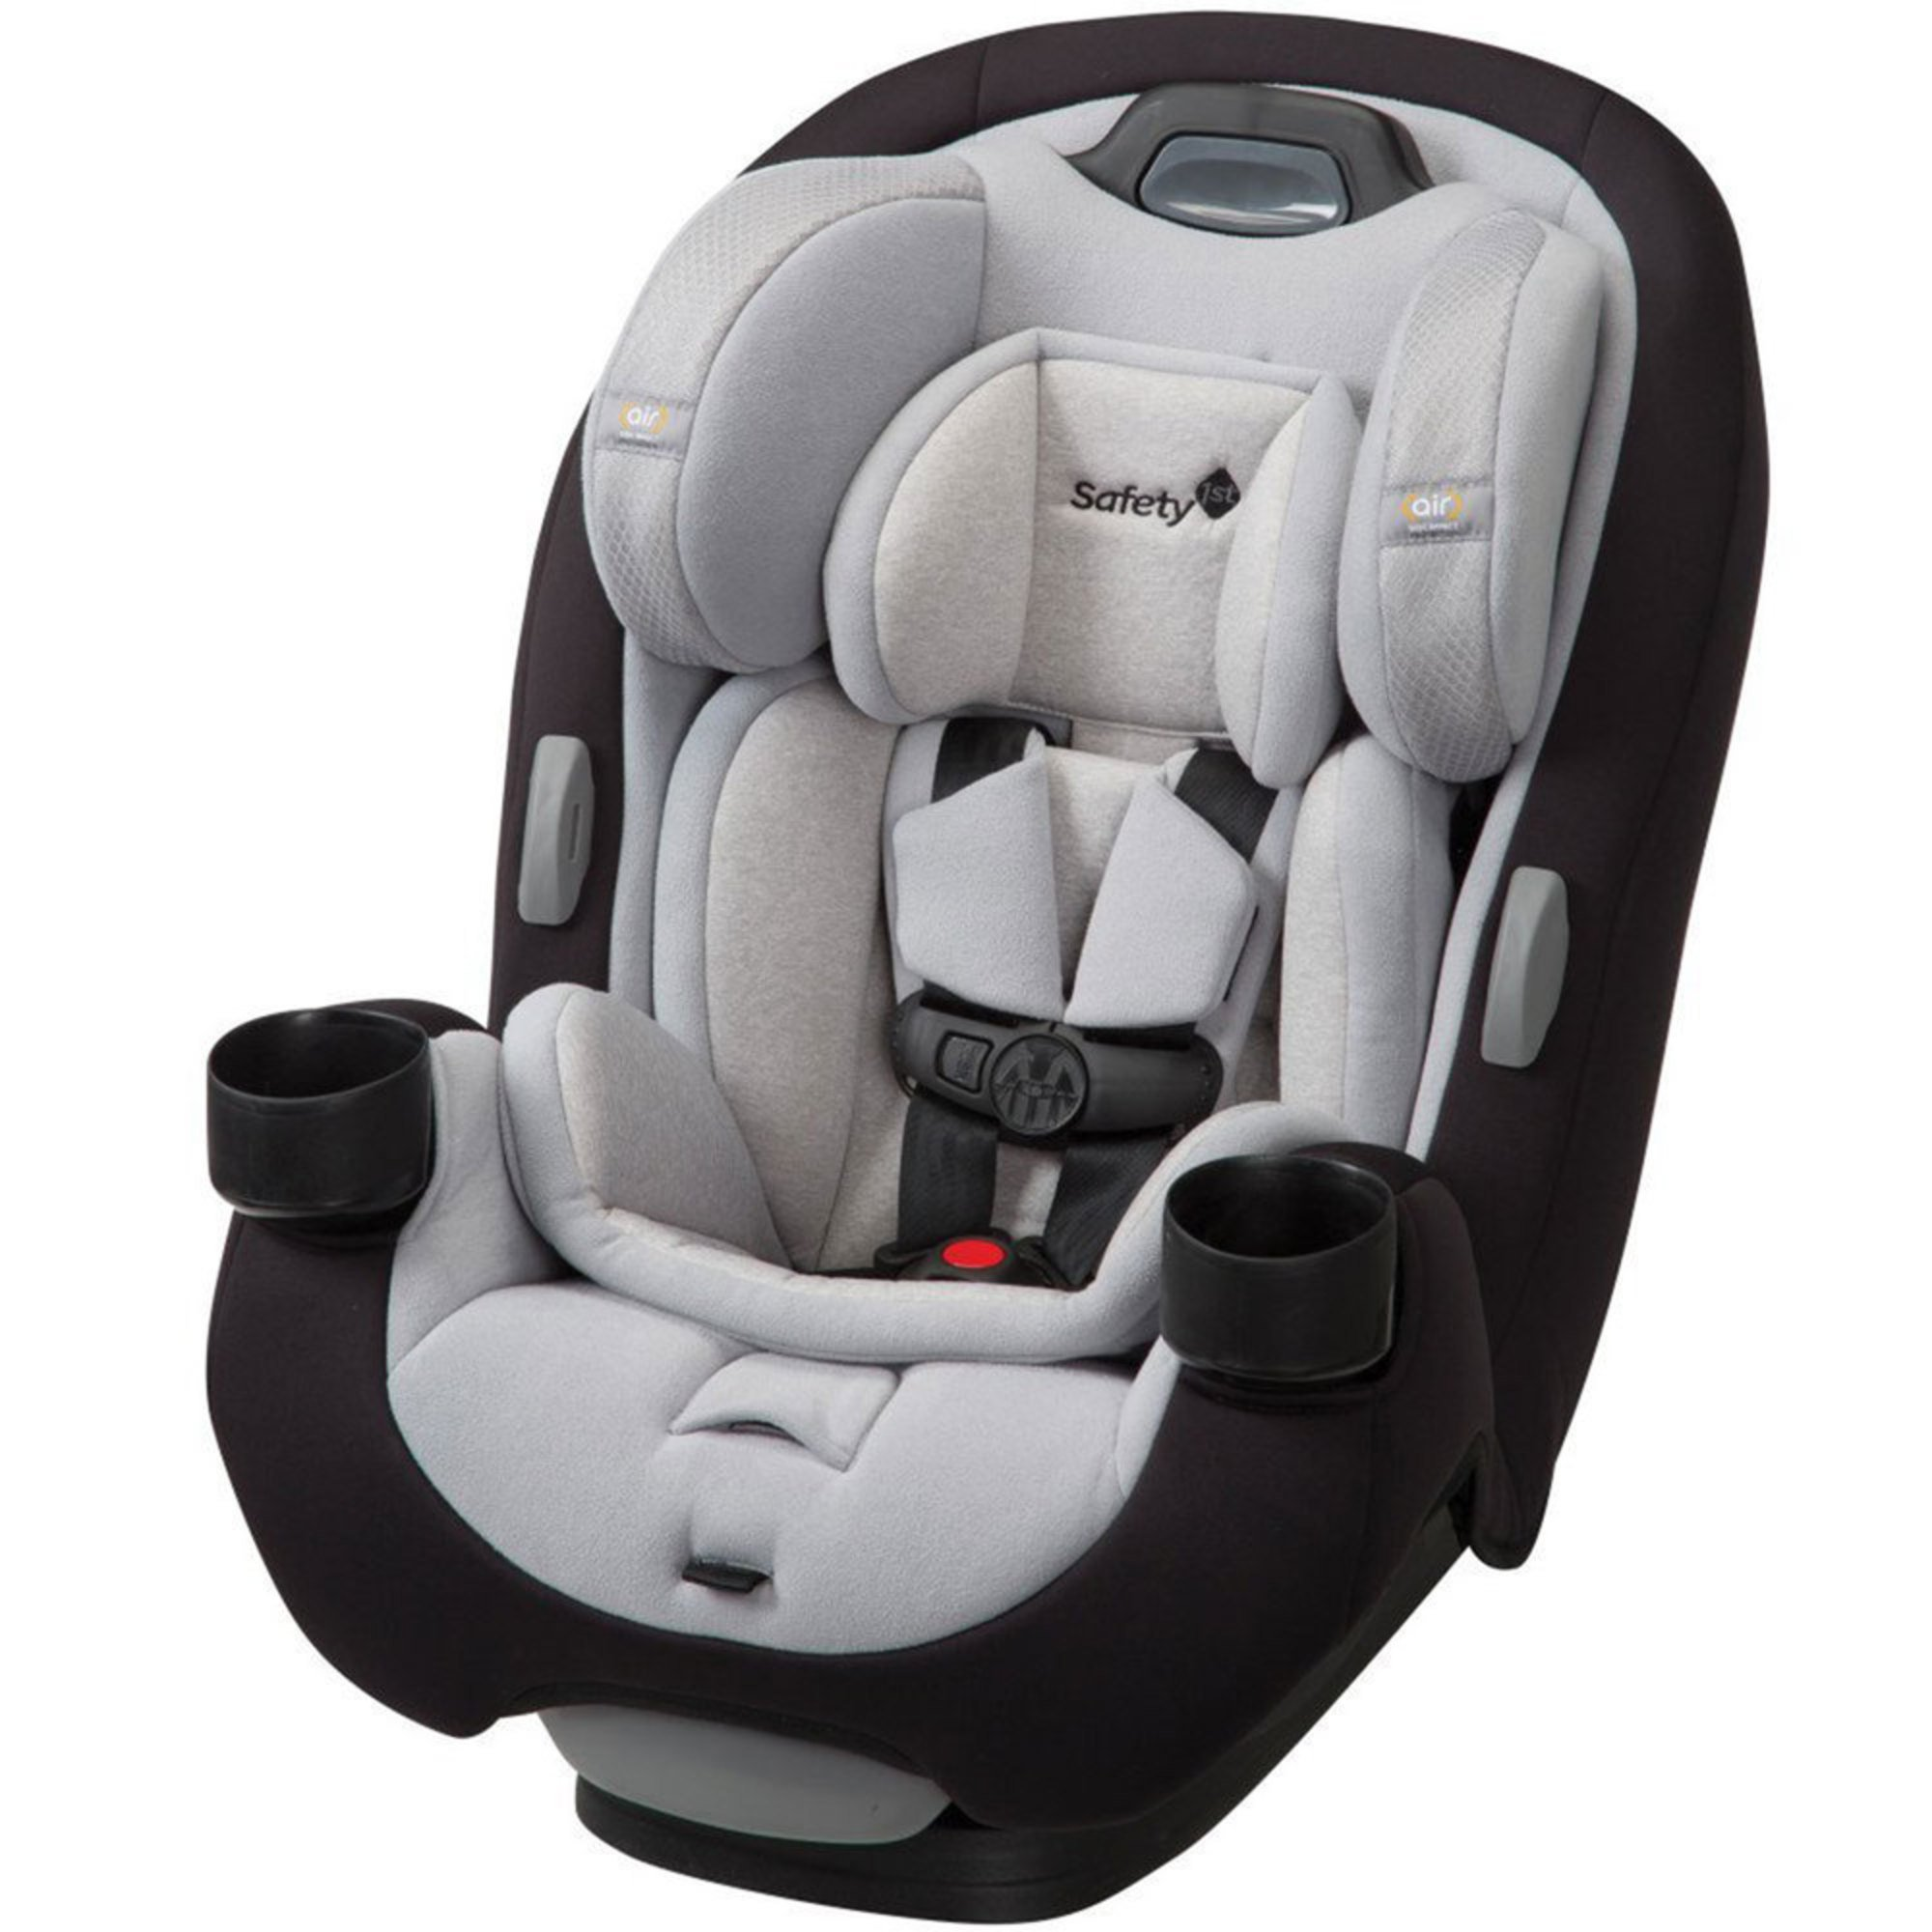 safety 1st grow go ex air 3 in 1 convertible car seat black bird convertible car seats. Black Bedroom Furniture Sets. Home Design Ideas